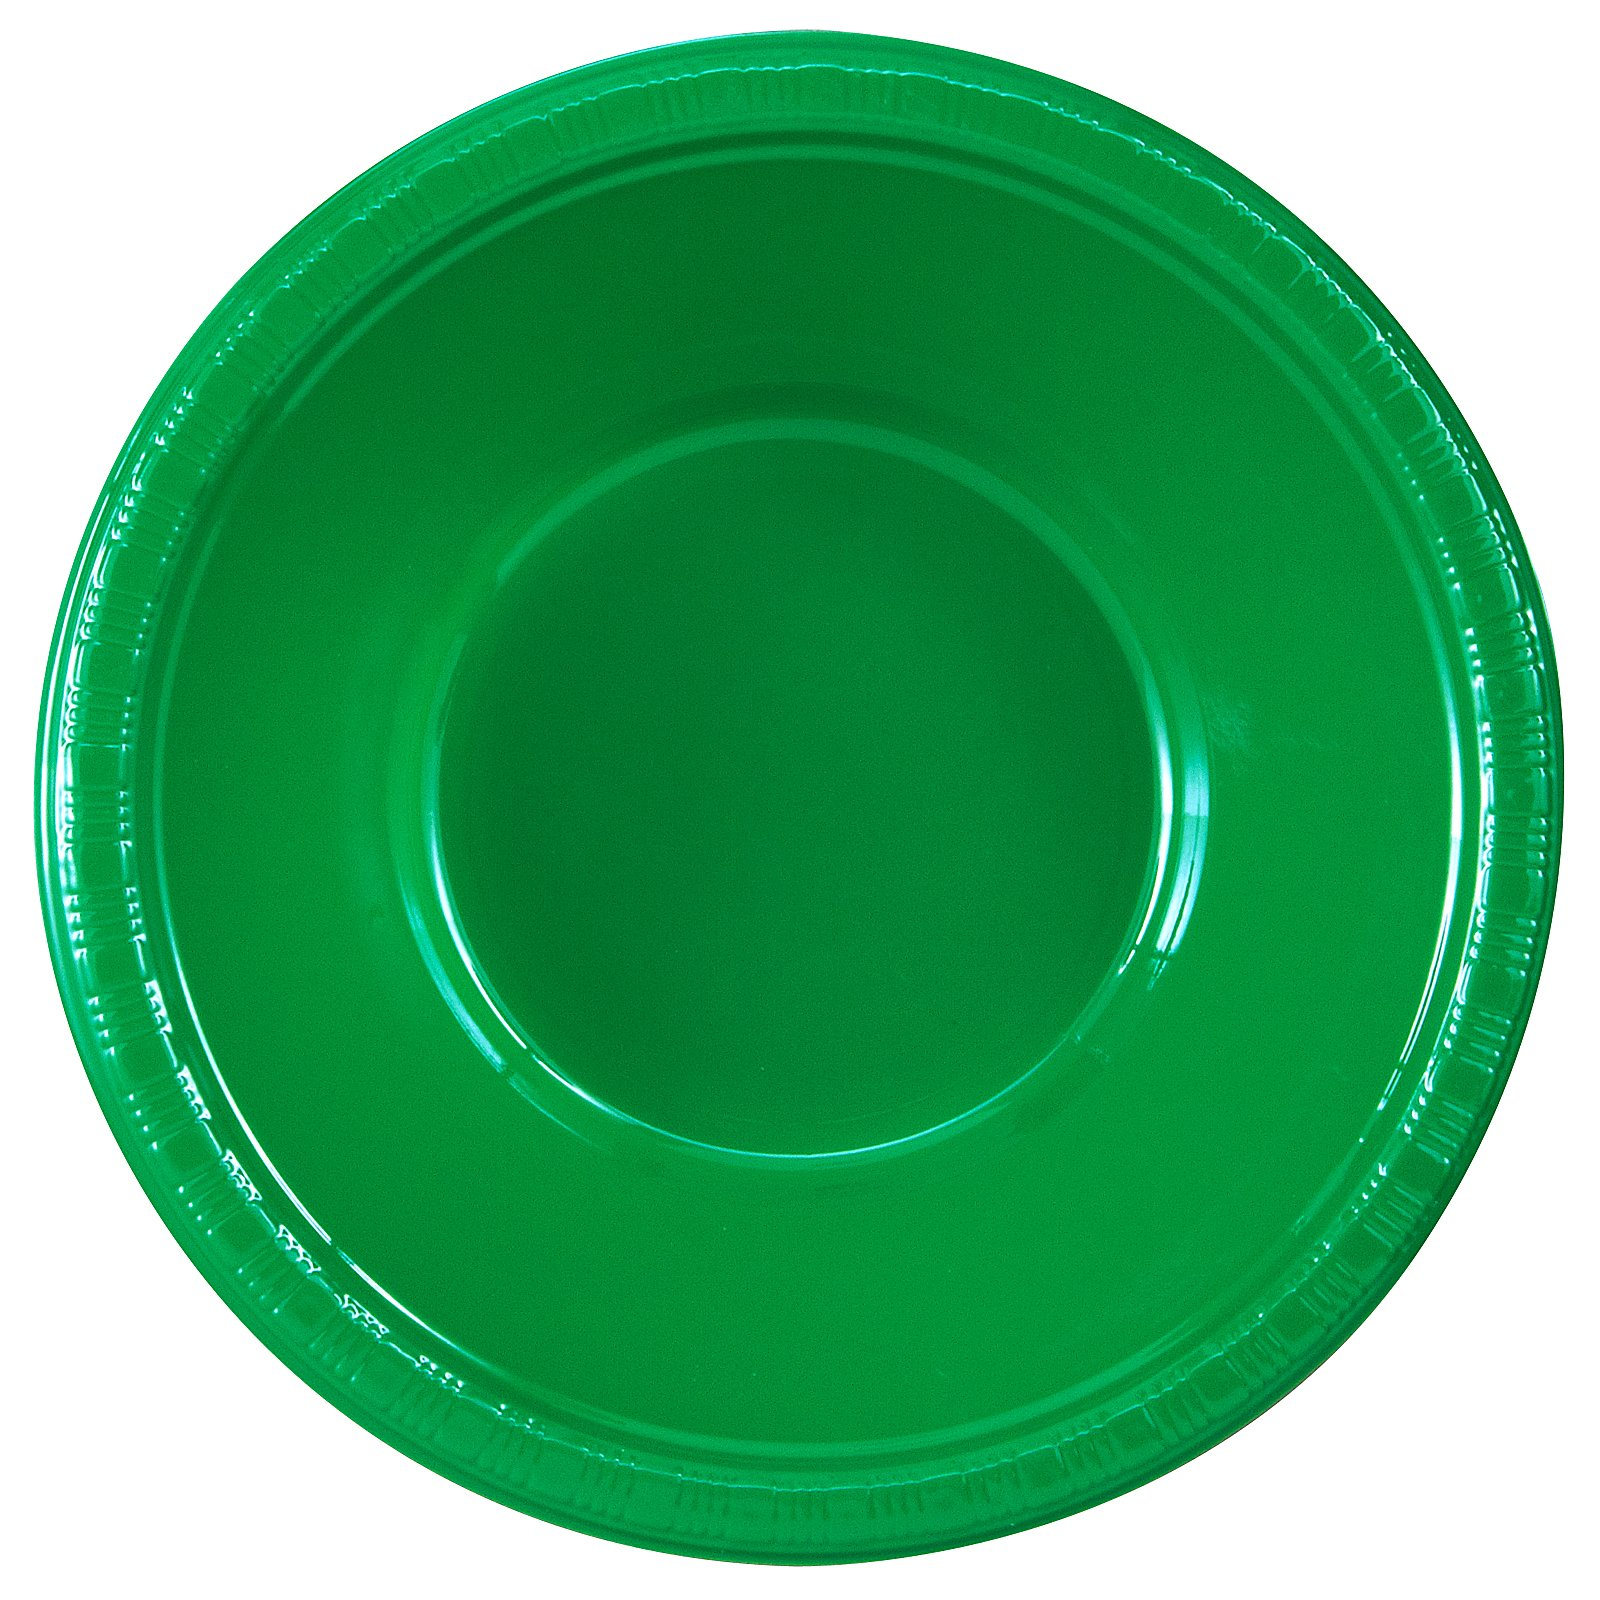 Emerald Green (Green) Plastic Bowls (20 count) - Click Image to Close